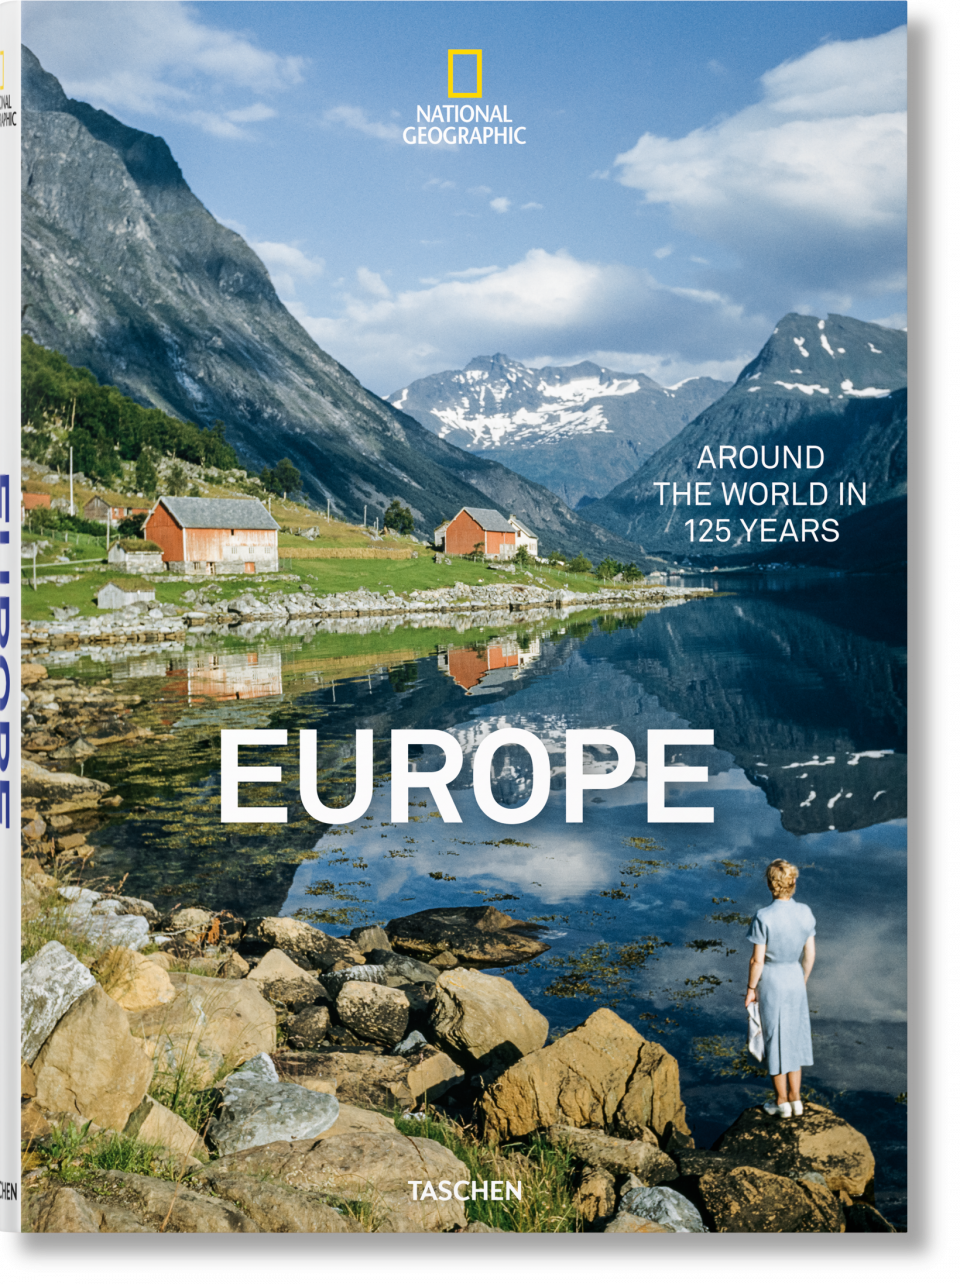 Around The World Fashion Publications: National Geographic. Around The World In 125 Years. Europe